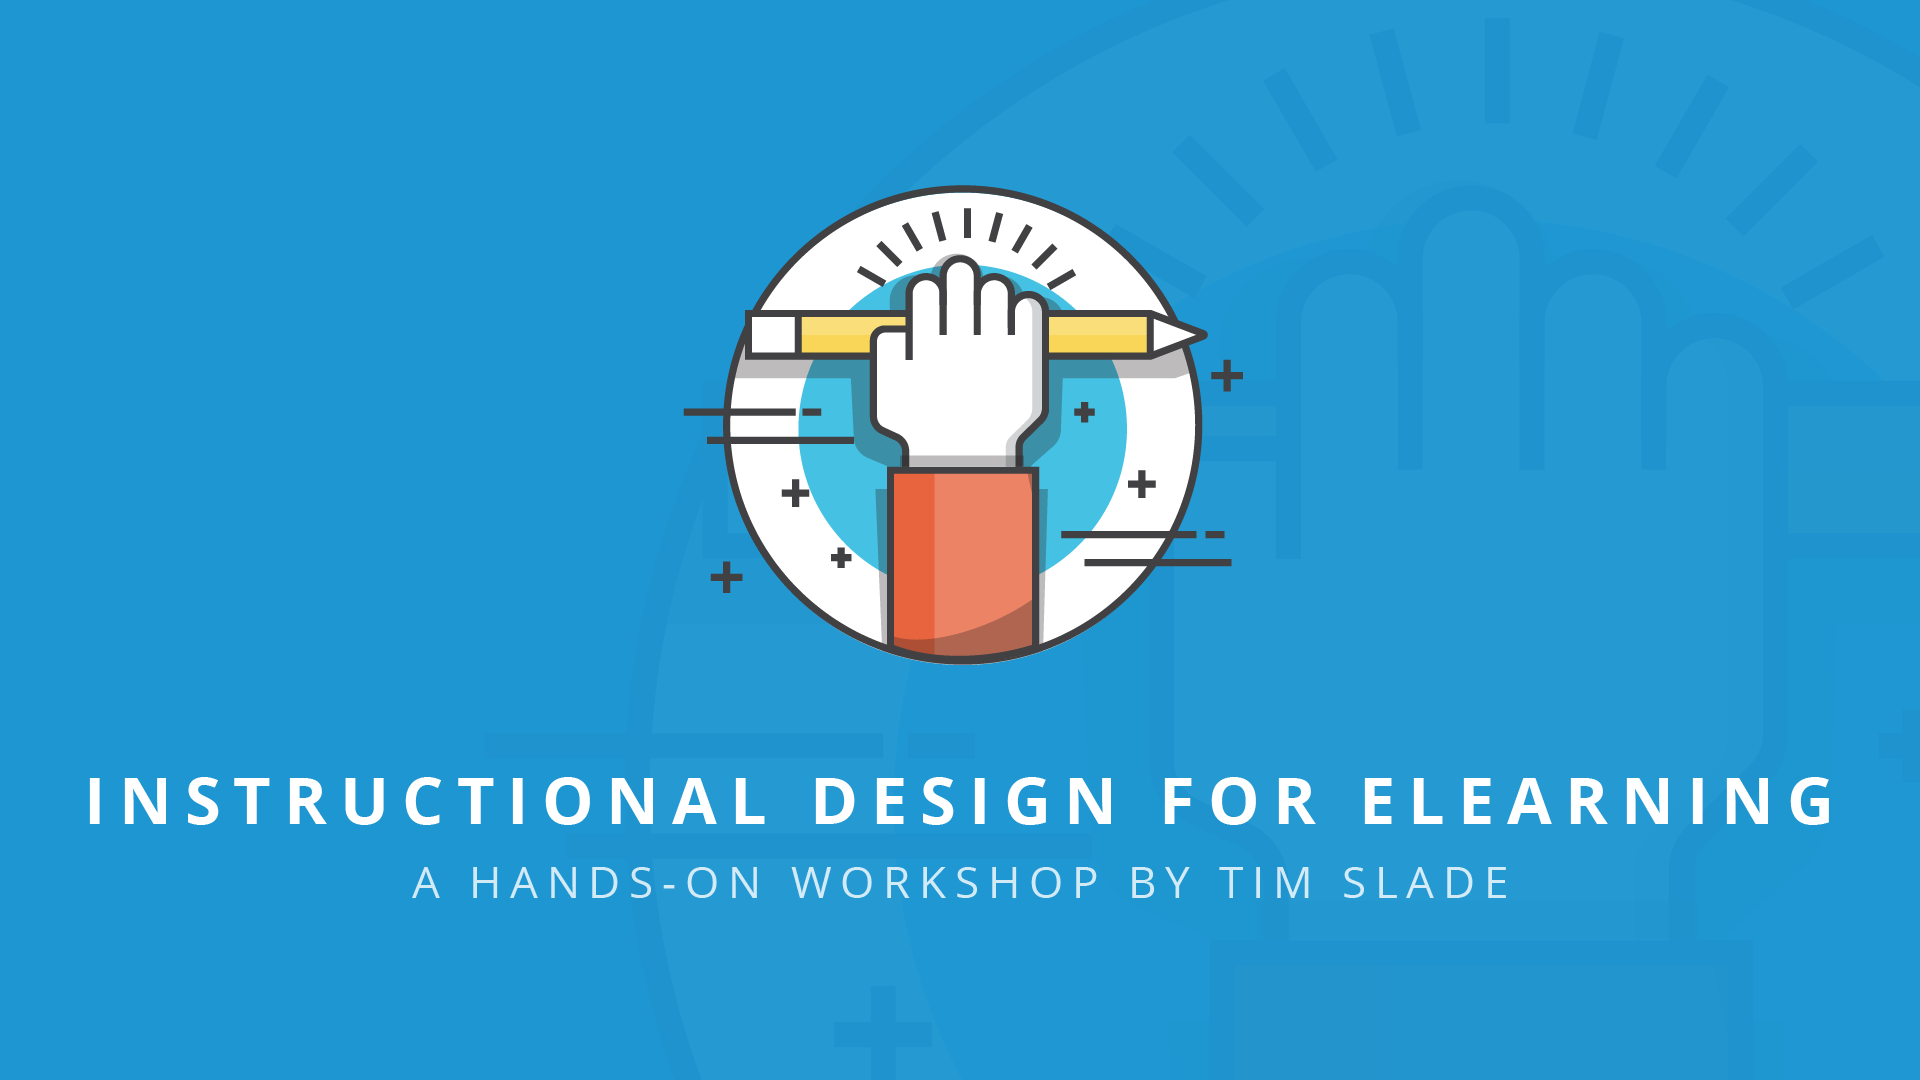 instructional design for eLearning - eLearning Workshops by Tim Slade